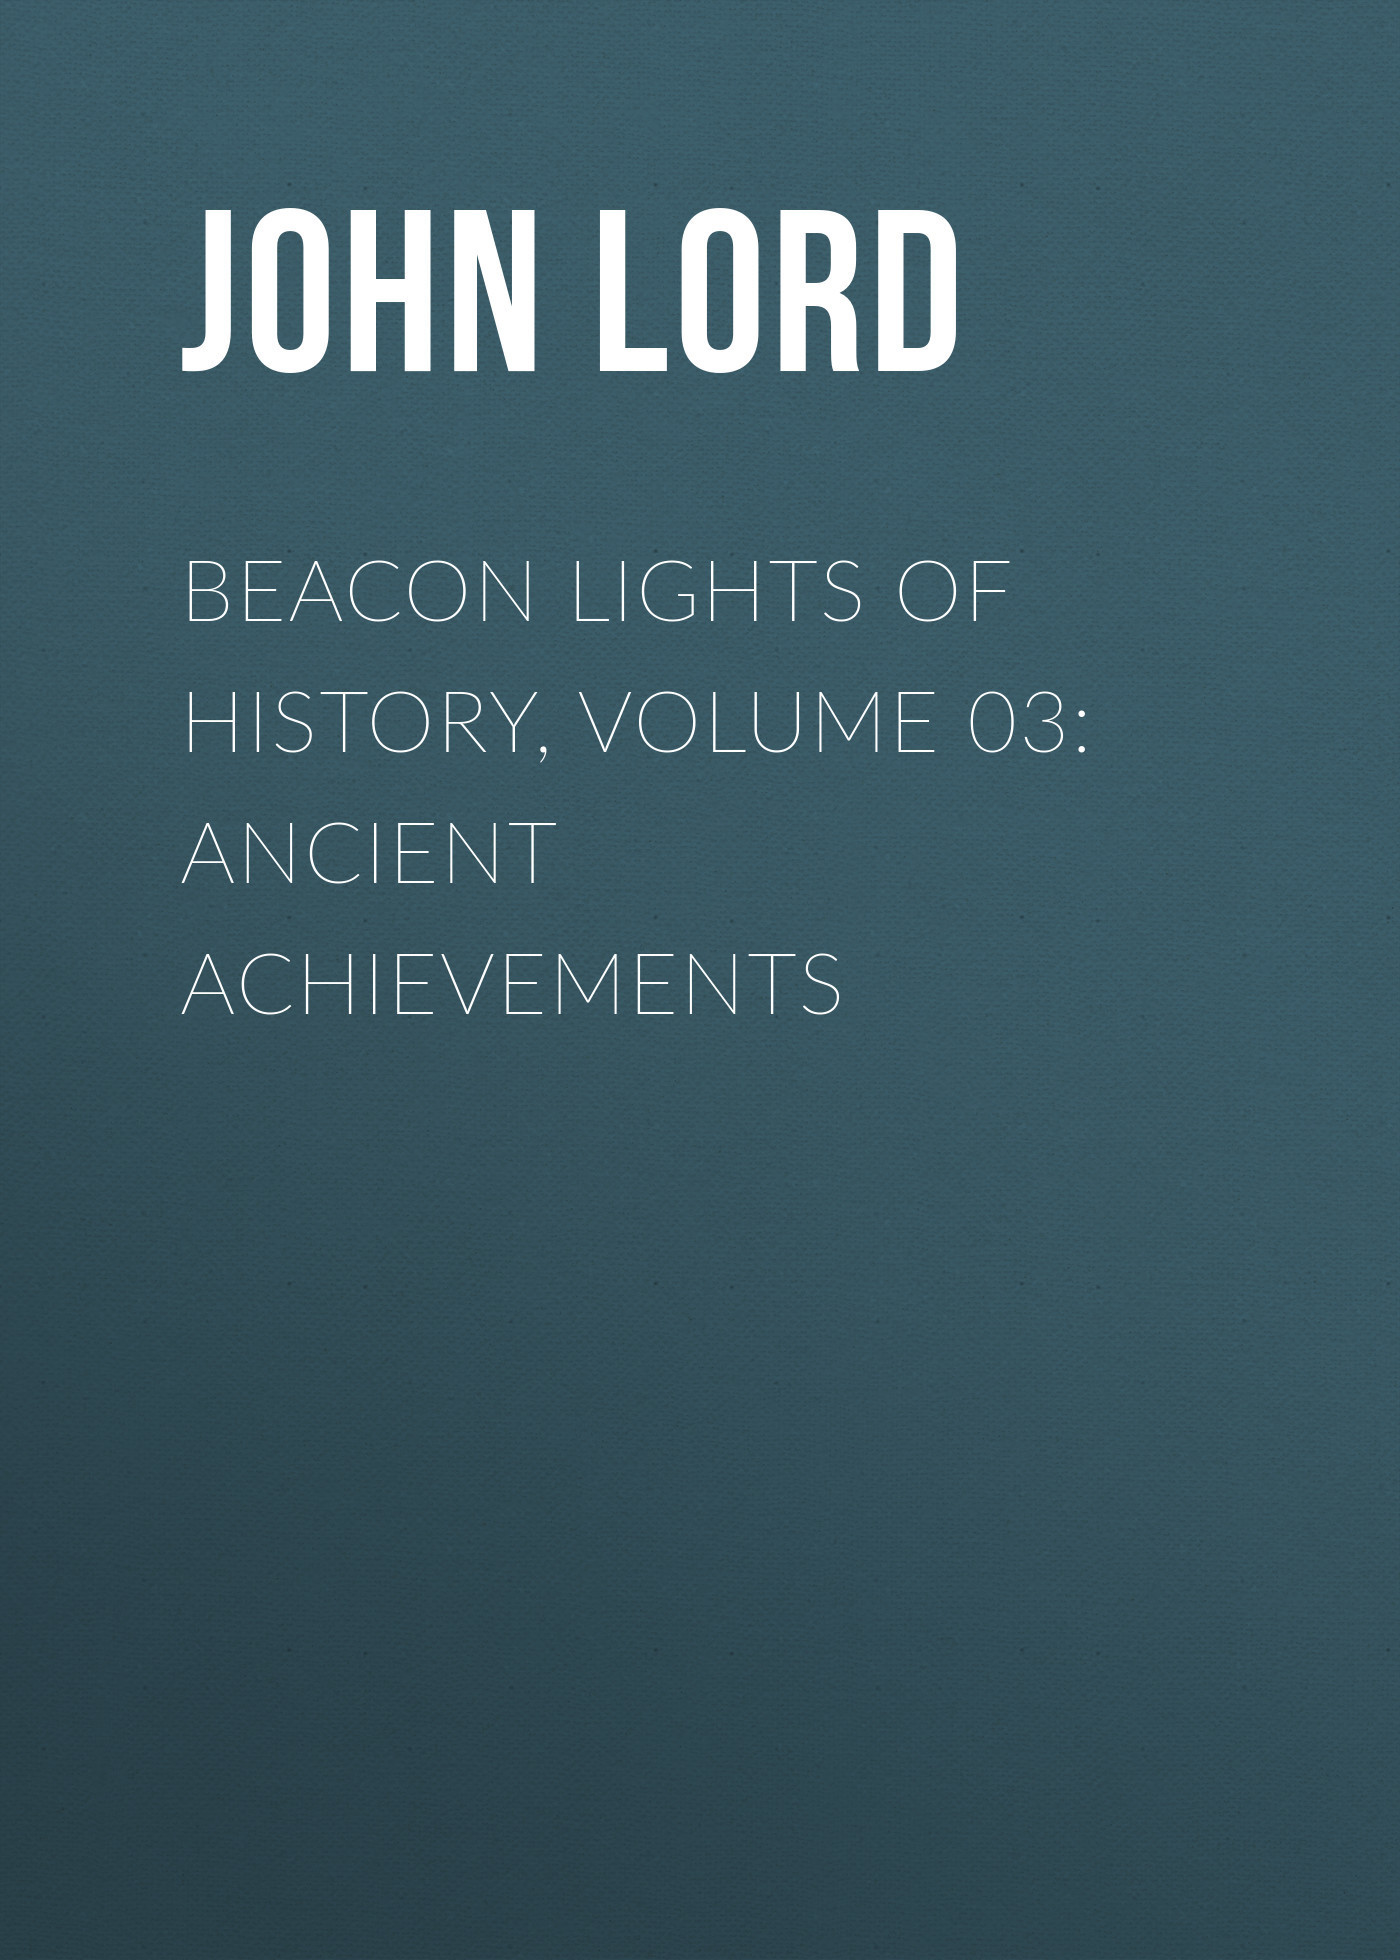 John Lord Beacon Lights of History, Volume 03: Ancient Achievements